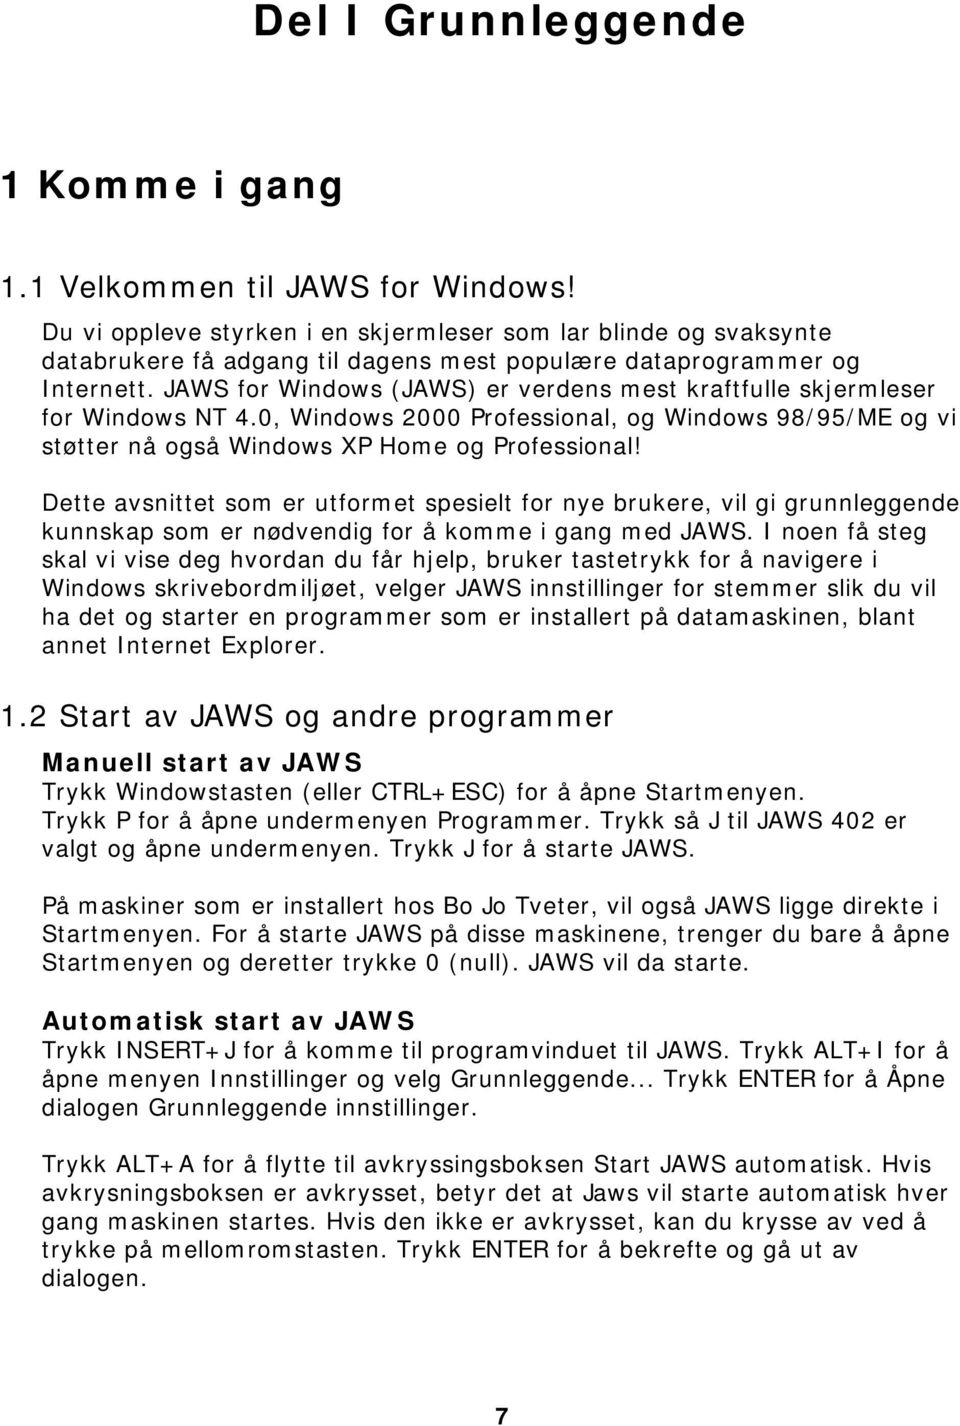 JAWS for Windows (JAWS) er verdens mest kraftfulle skjermleser for Windows NT 4.0, Windows 2000 Professional, og Windows 98/95/ME og vi støtter nå også Windows XP Home og Professional!